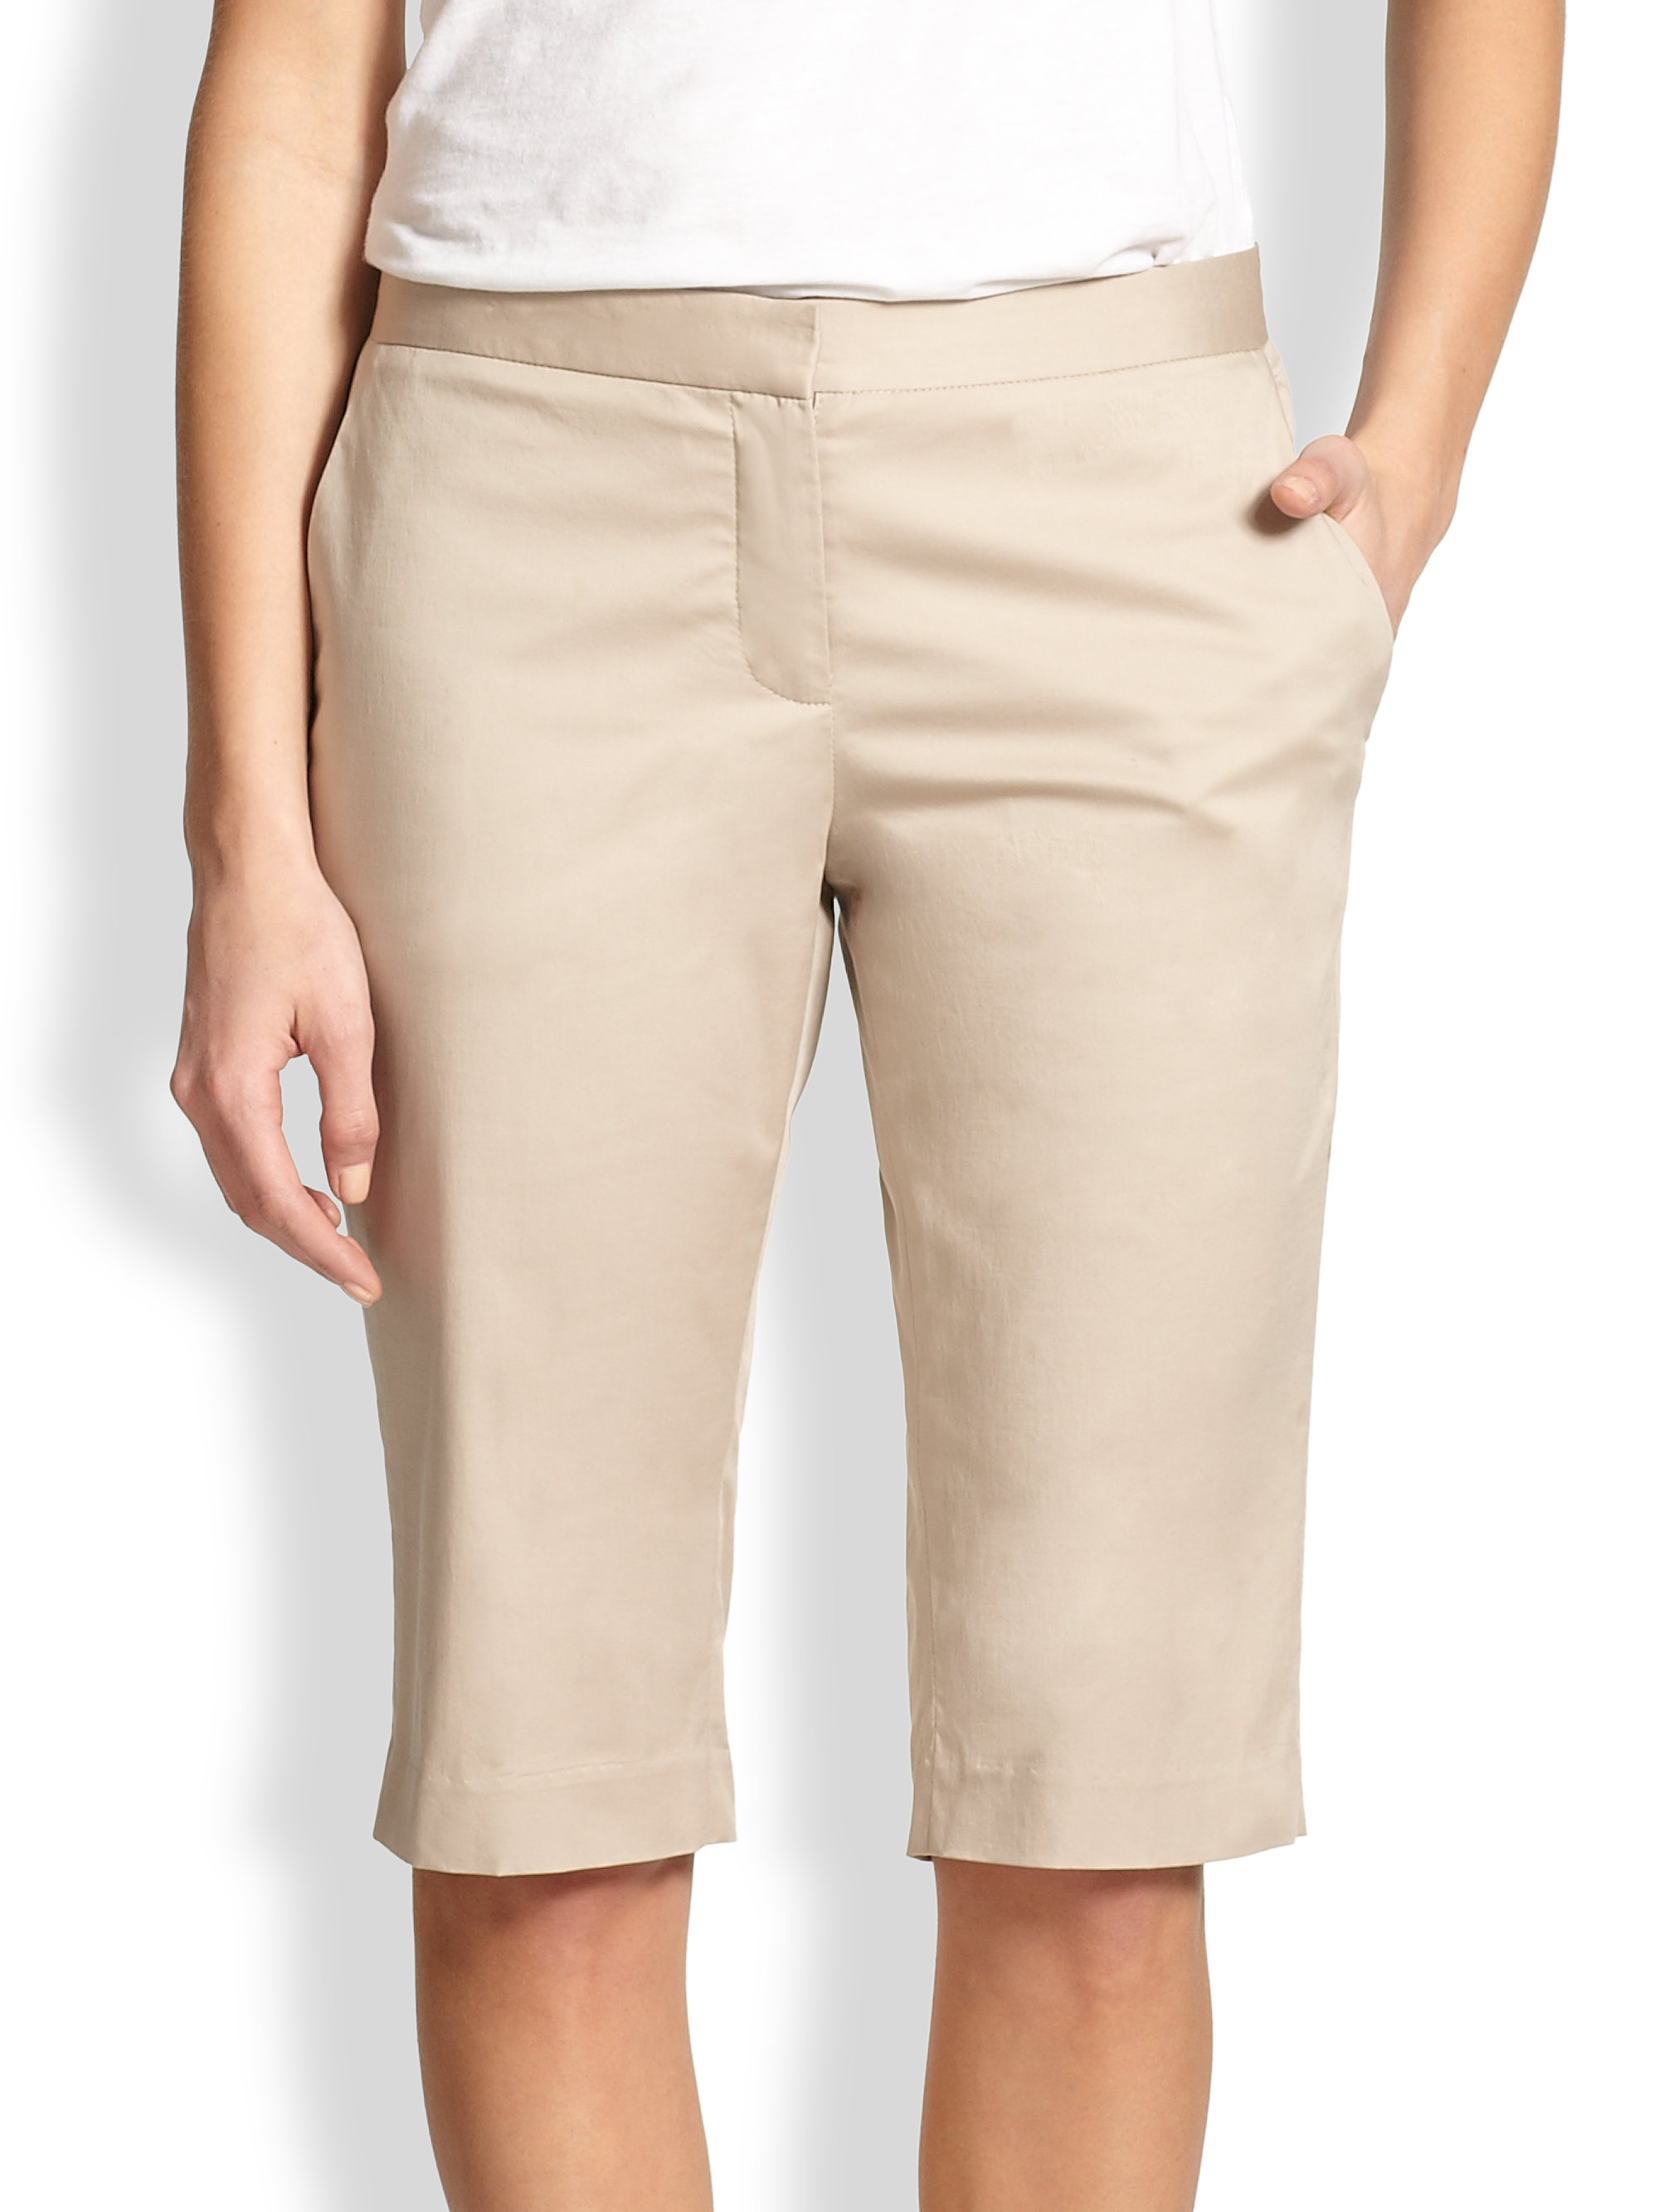 Theory Jitney Stretch Cotton Bermuda Shorts in Natural | Lyst